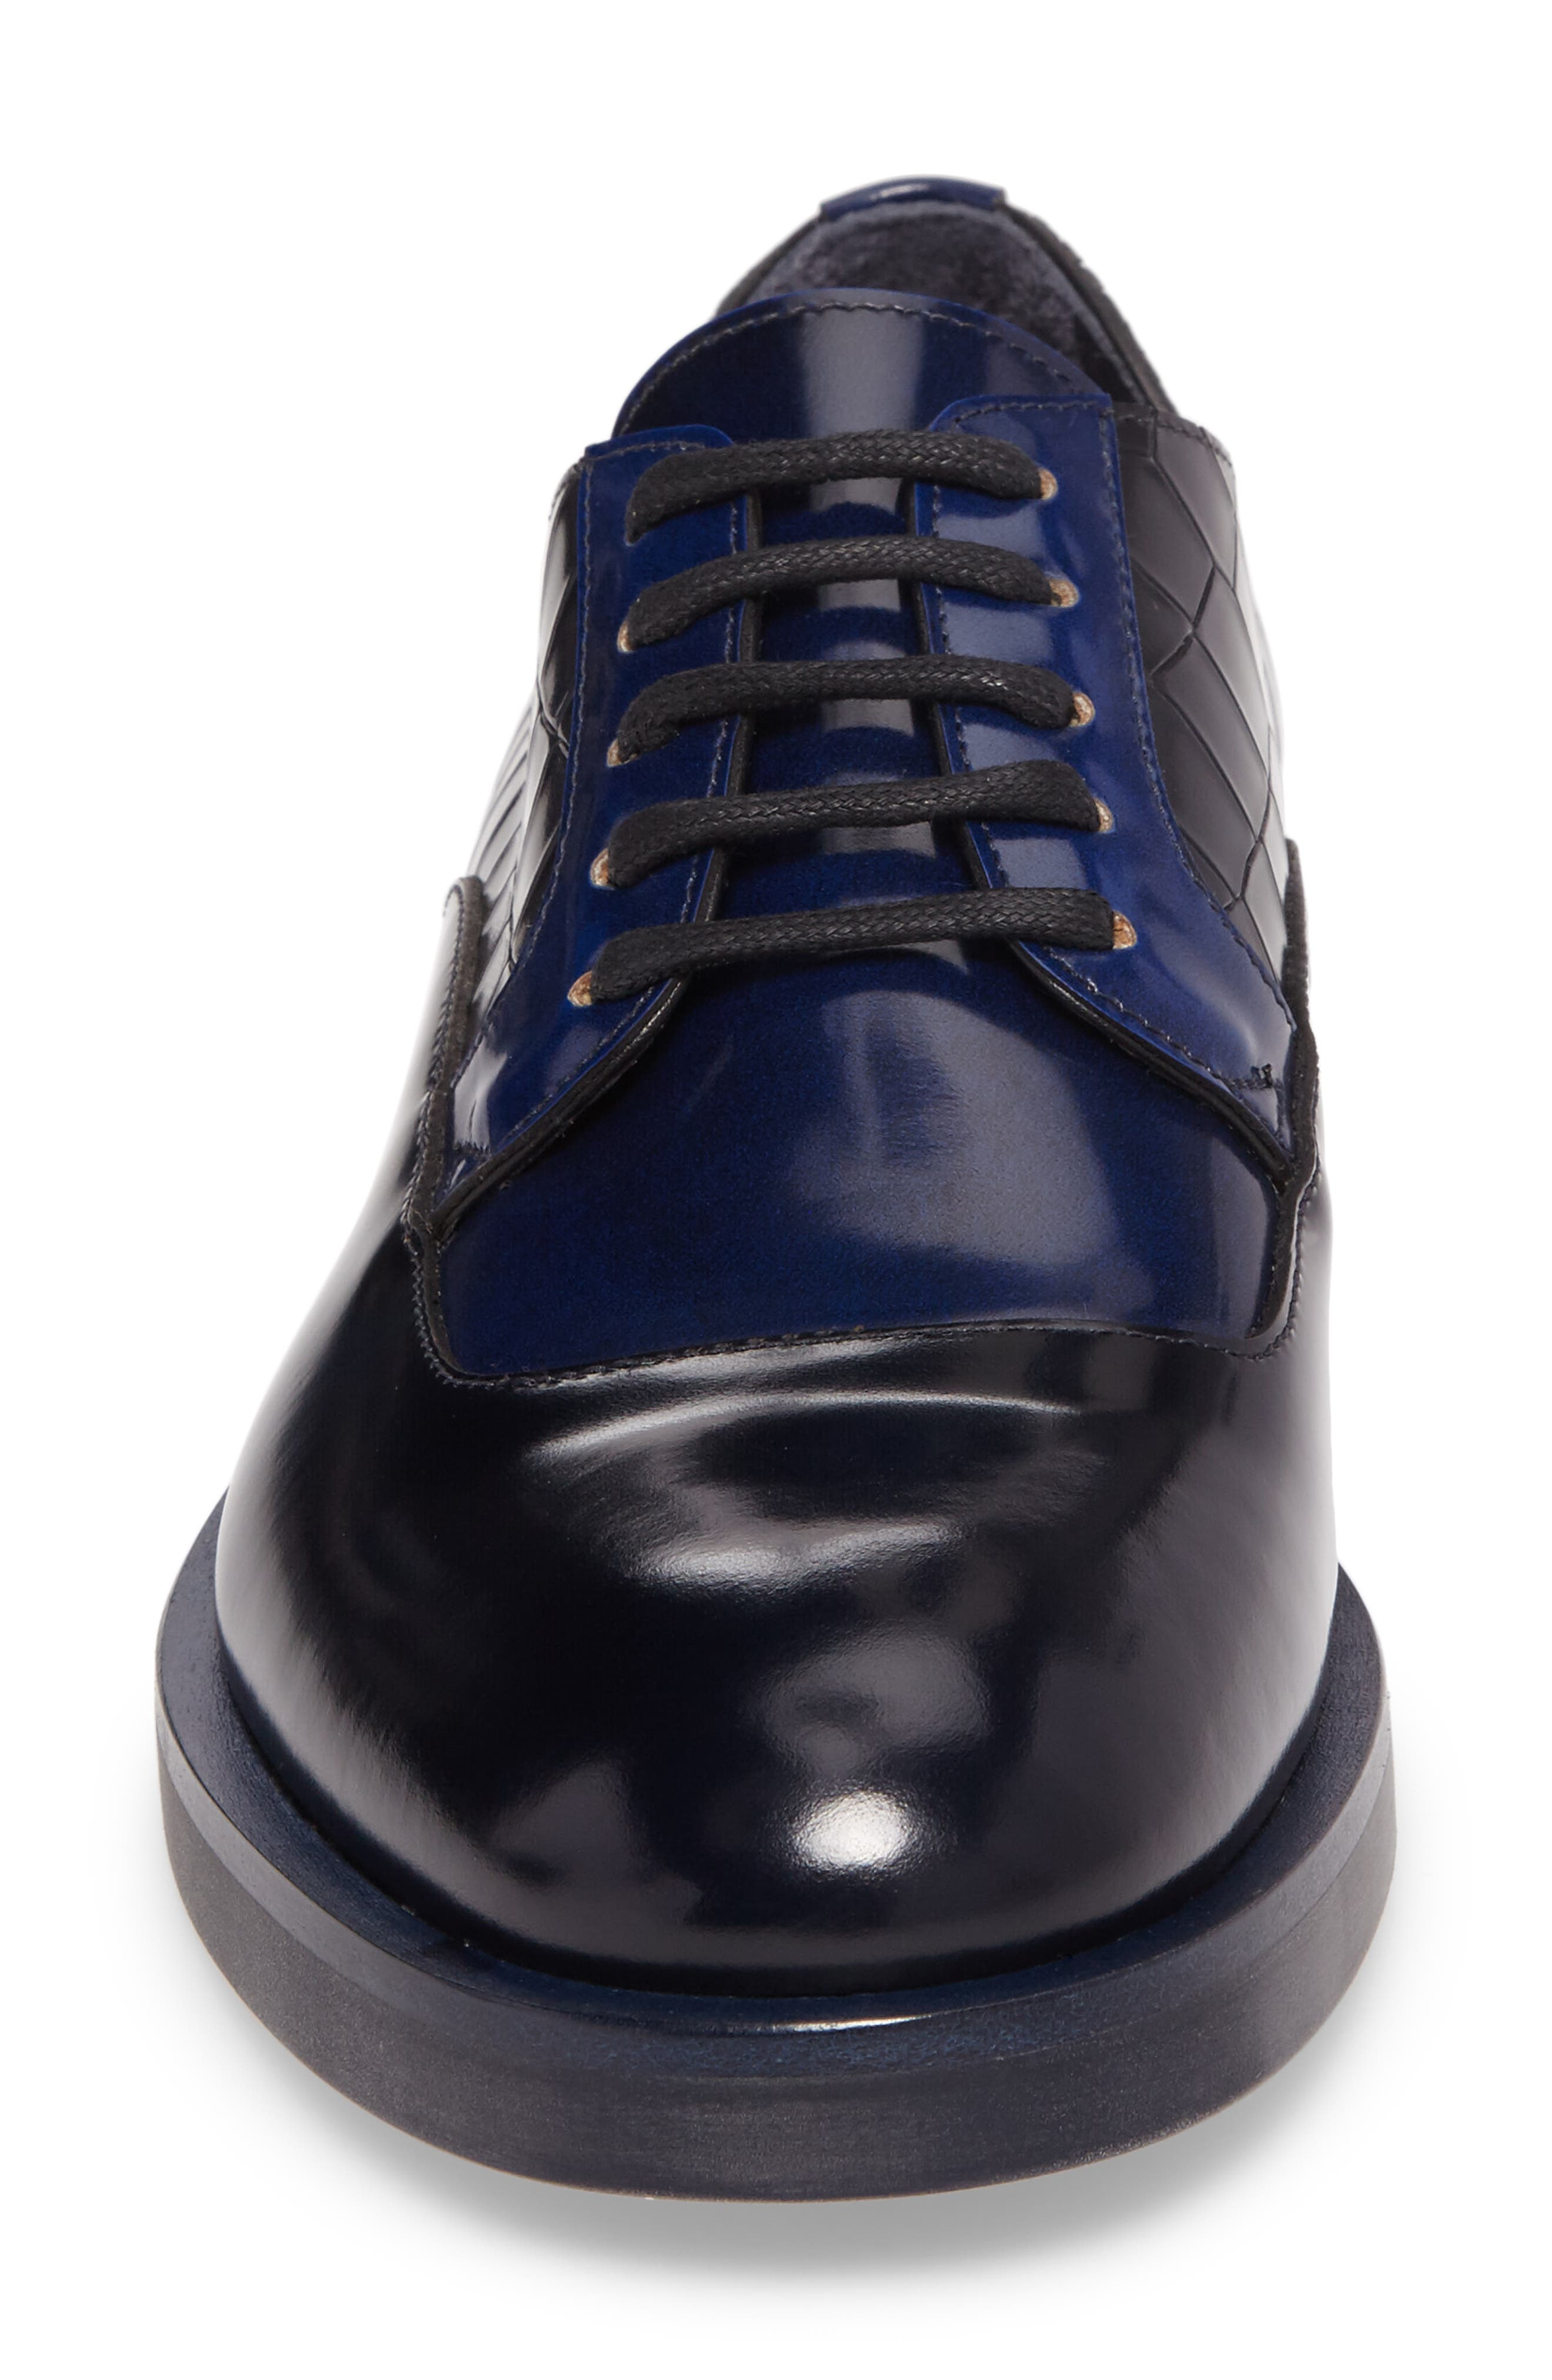 Bolan Croc Embossed Oxford,                             Alternate thumbnail 4, color,                             410